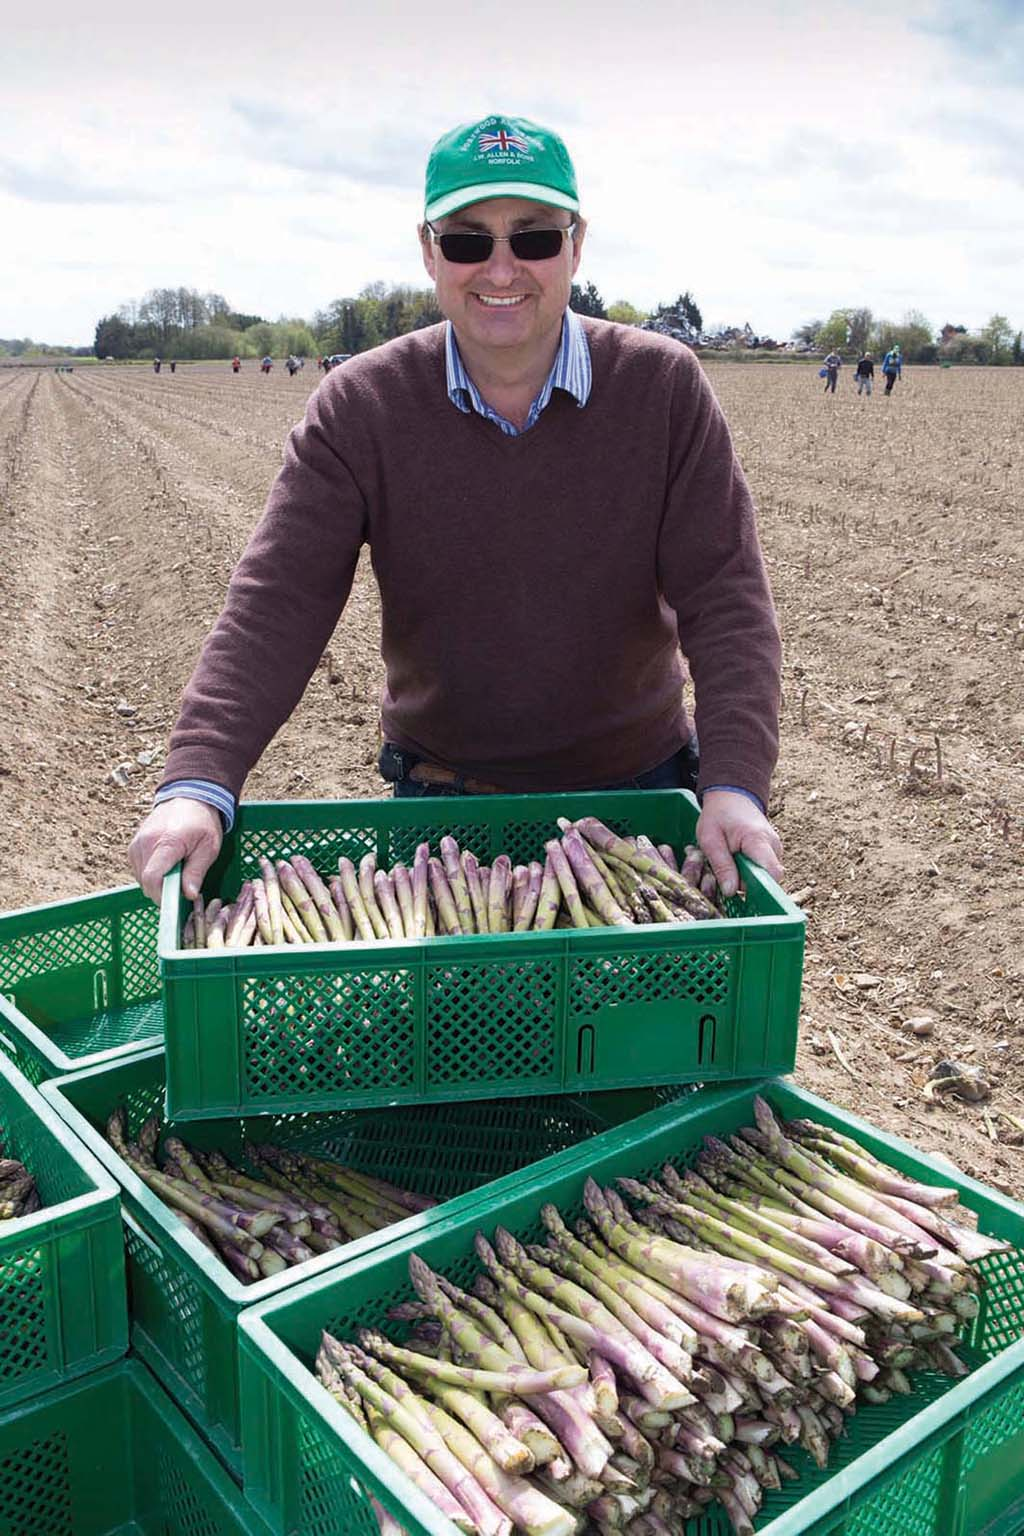 Asparagus supplier Andy Allen